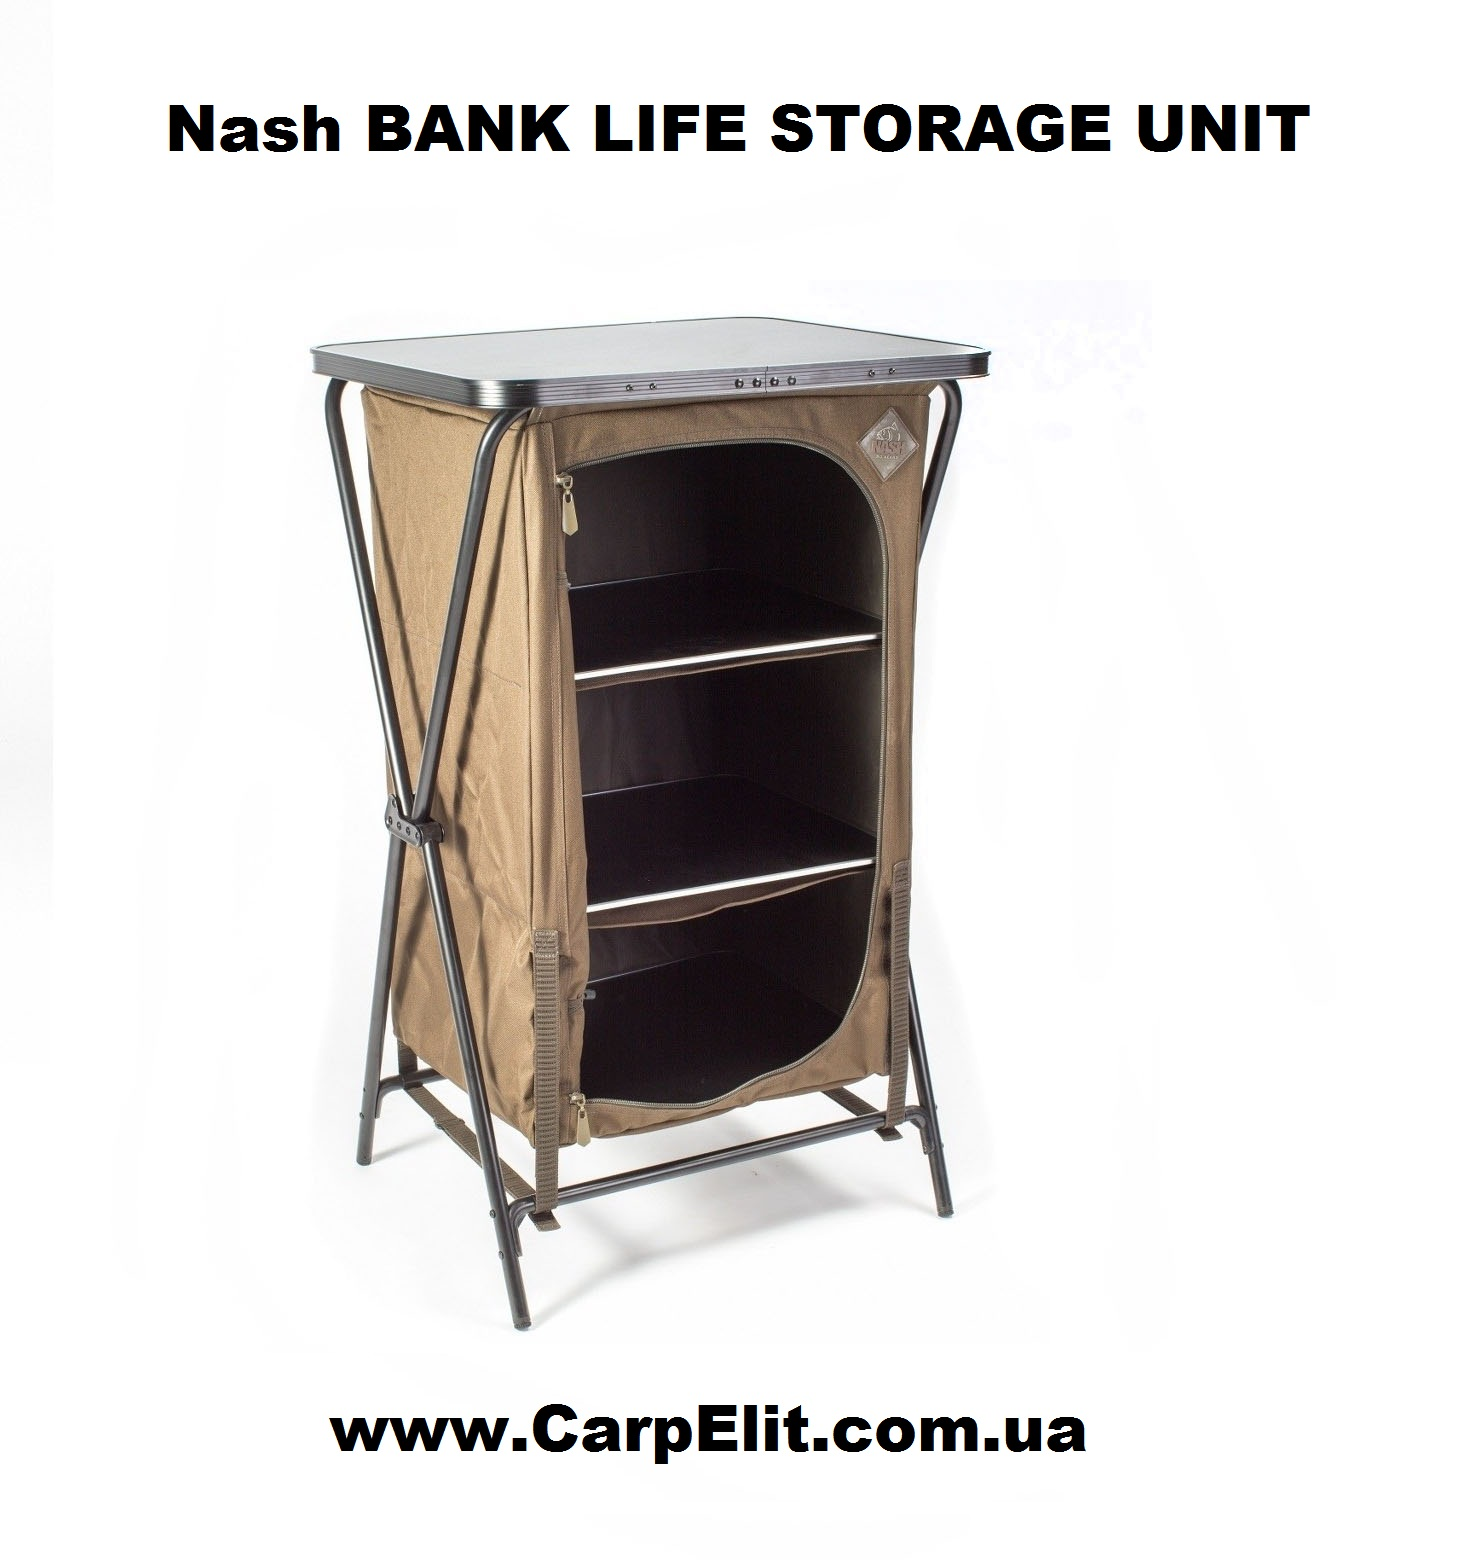 Органайзер Nash BANK LIFE STORAGE UNIT